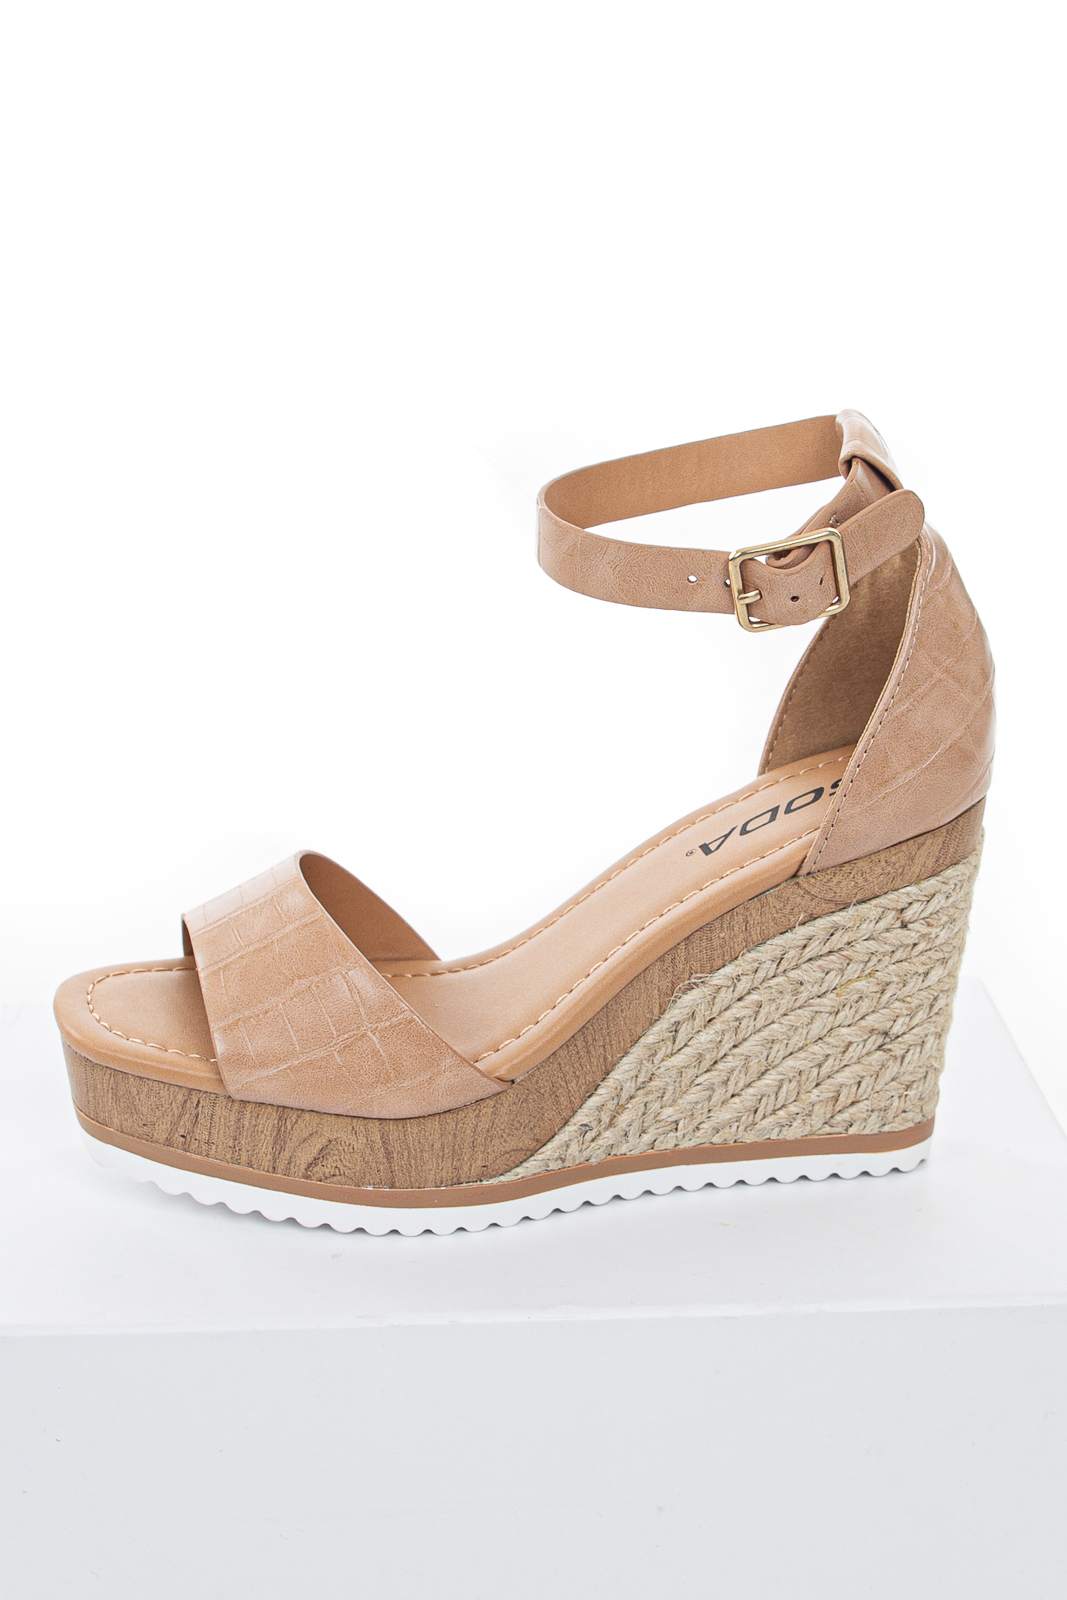 Latte Crocodile Texture Faux Leather Espadrille Wedges